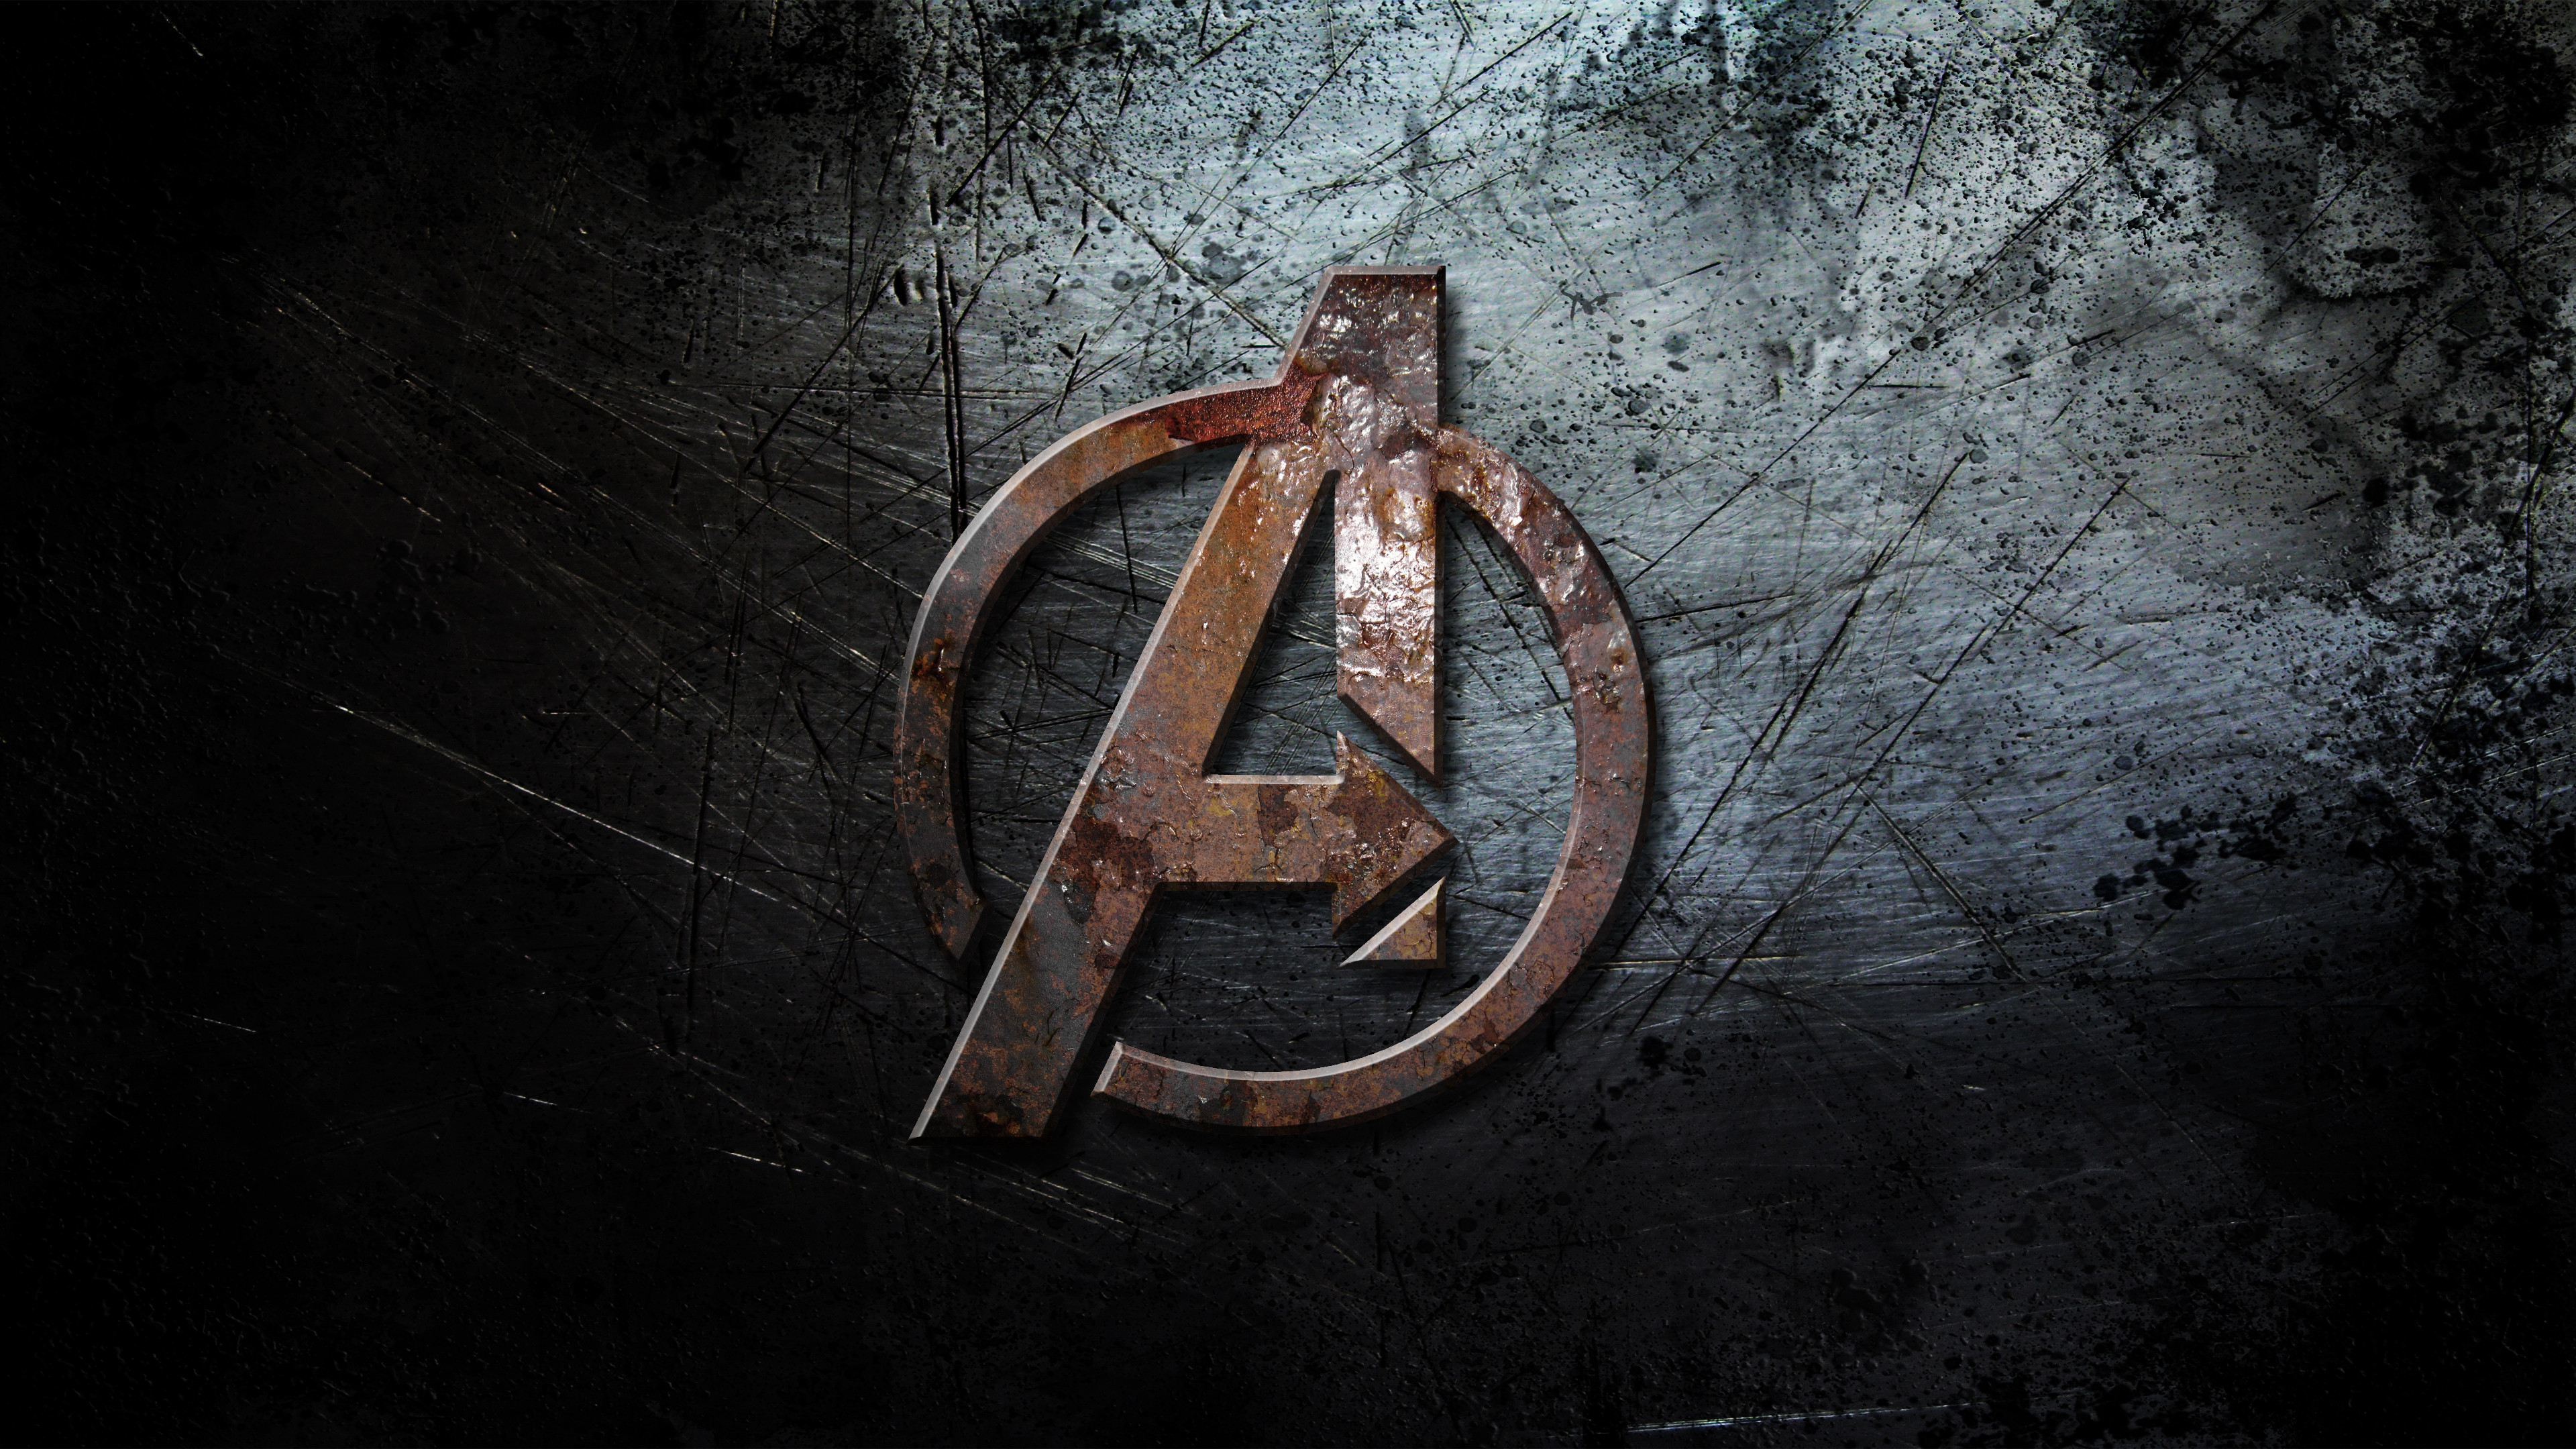 download hd wallpapers of avengers 2